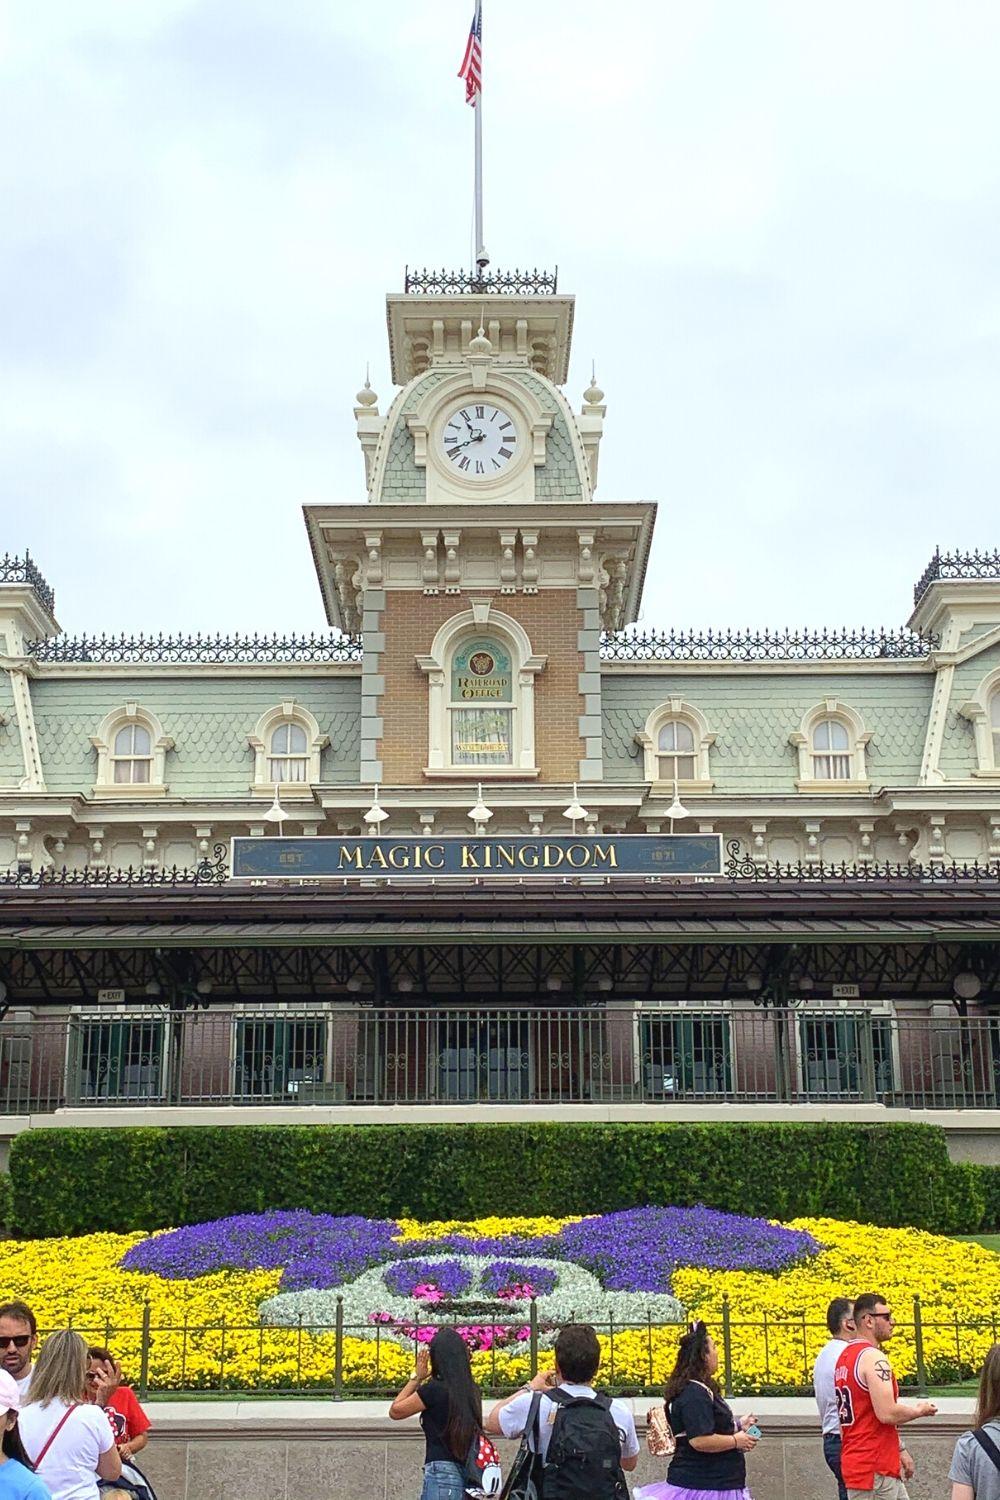 Disney officially submitted a proposal for a phased reopening of Walt Disney World. Here's the news on Disney's plans for reopening Disney parks in phases.